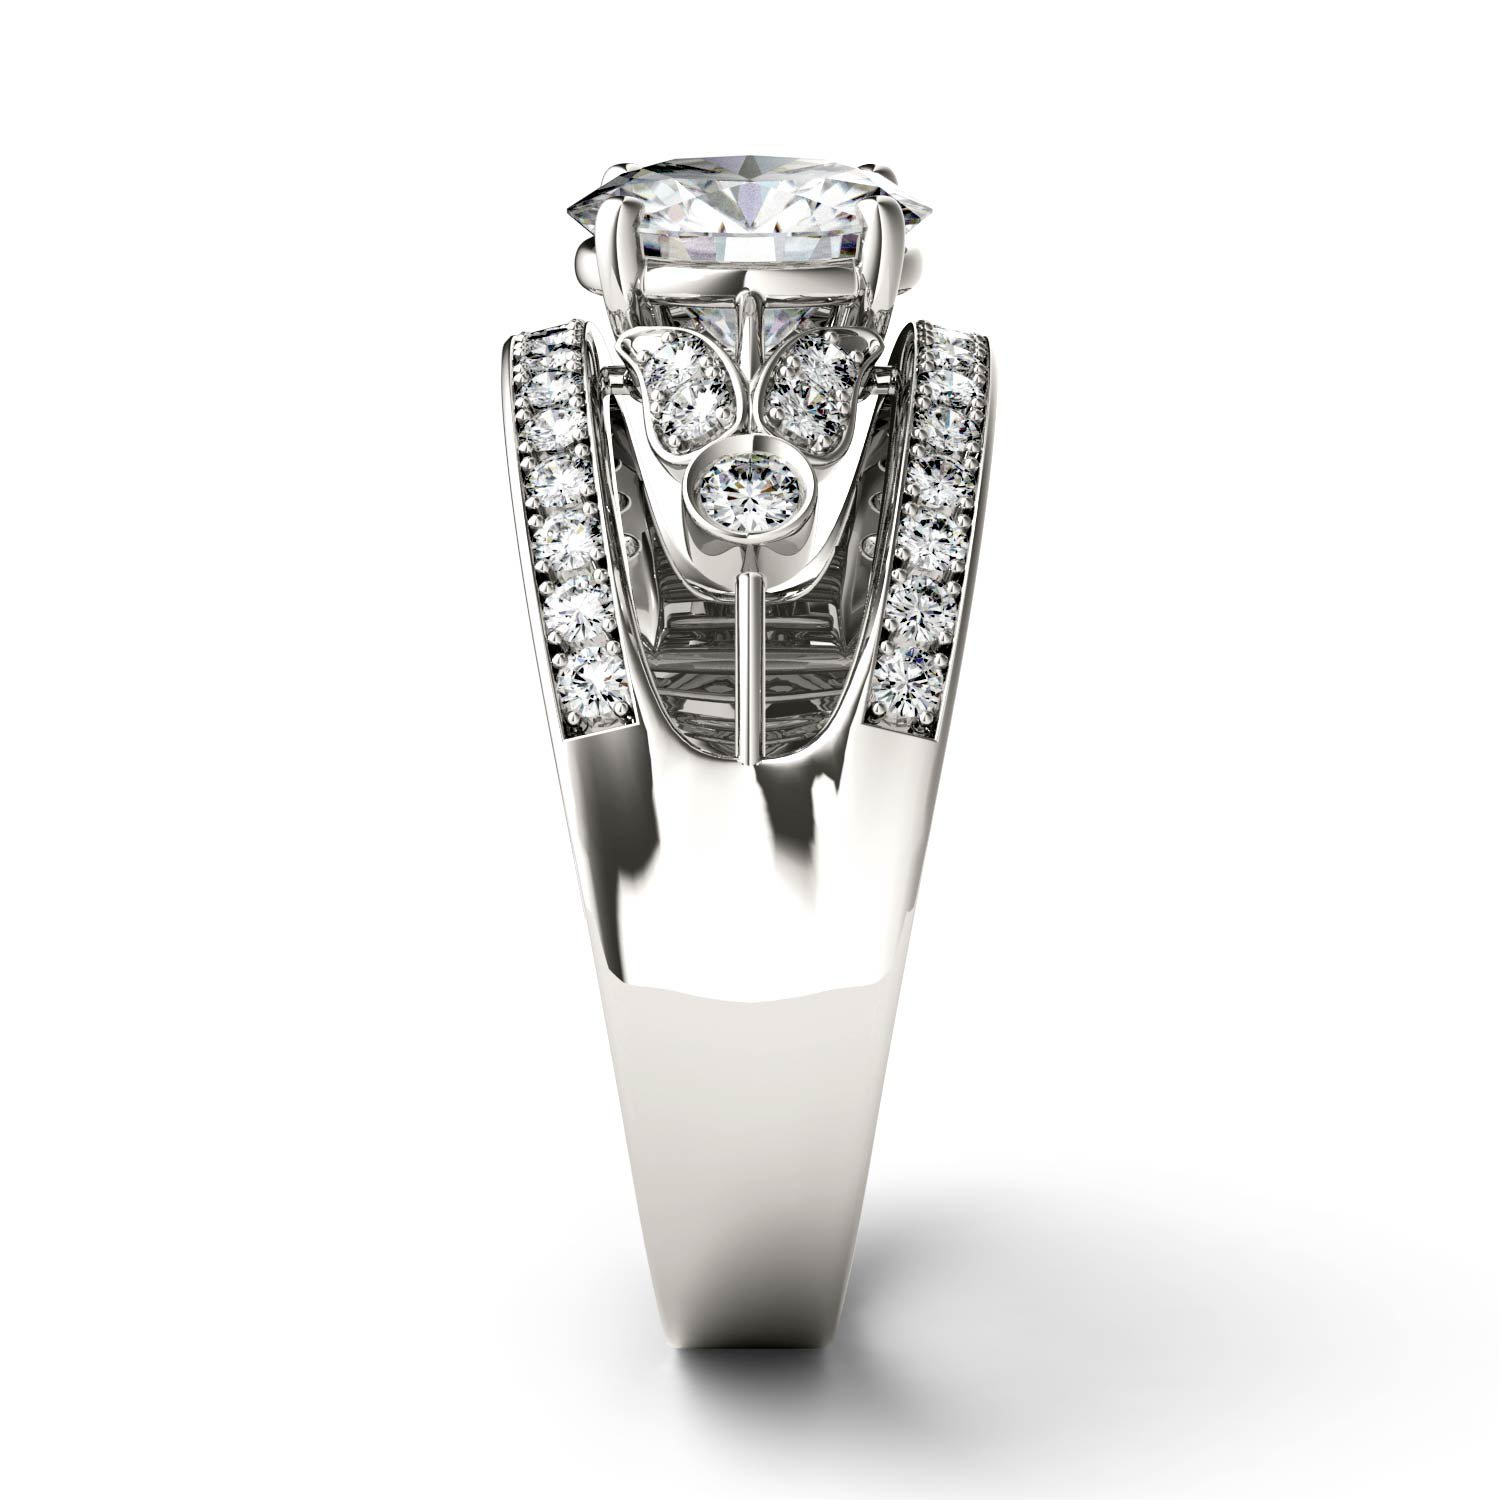 Forever Brilliant Round 7.5mm Moissanite Ring-size 7, 1.91cttw DEW By Charles & Colvard by Charles & Colvard (Image #5)